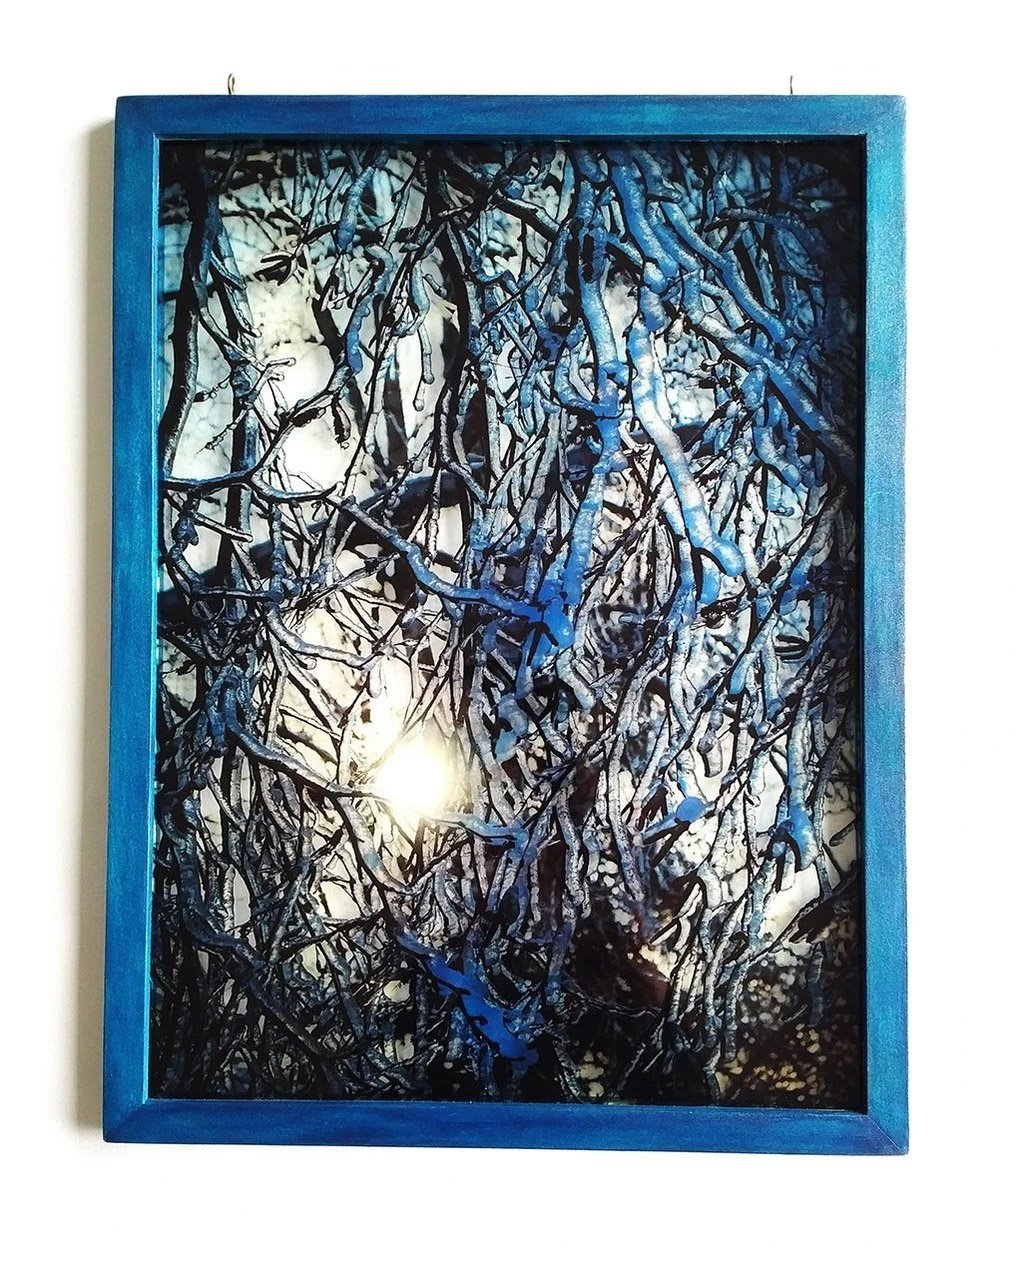 Light Shimmers Through the Ice in Rufuss Photographic Suncatcher | Artfest Ontario